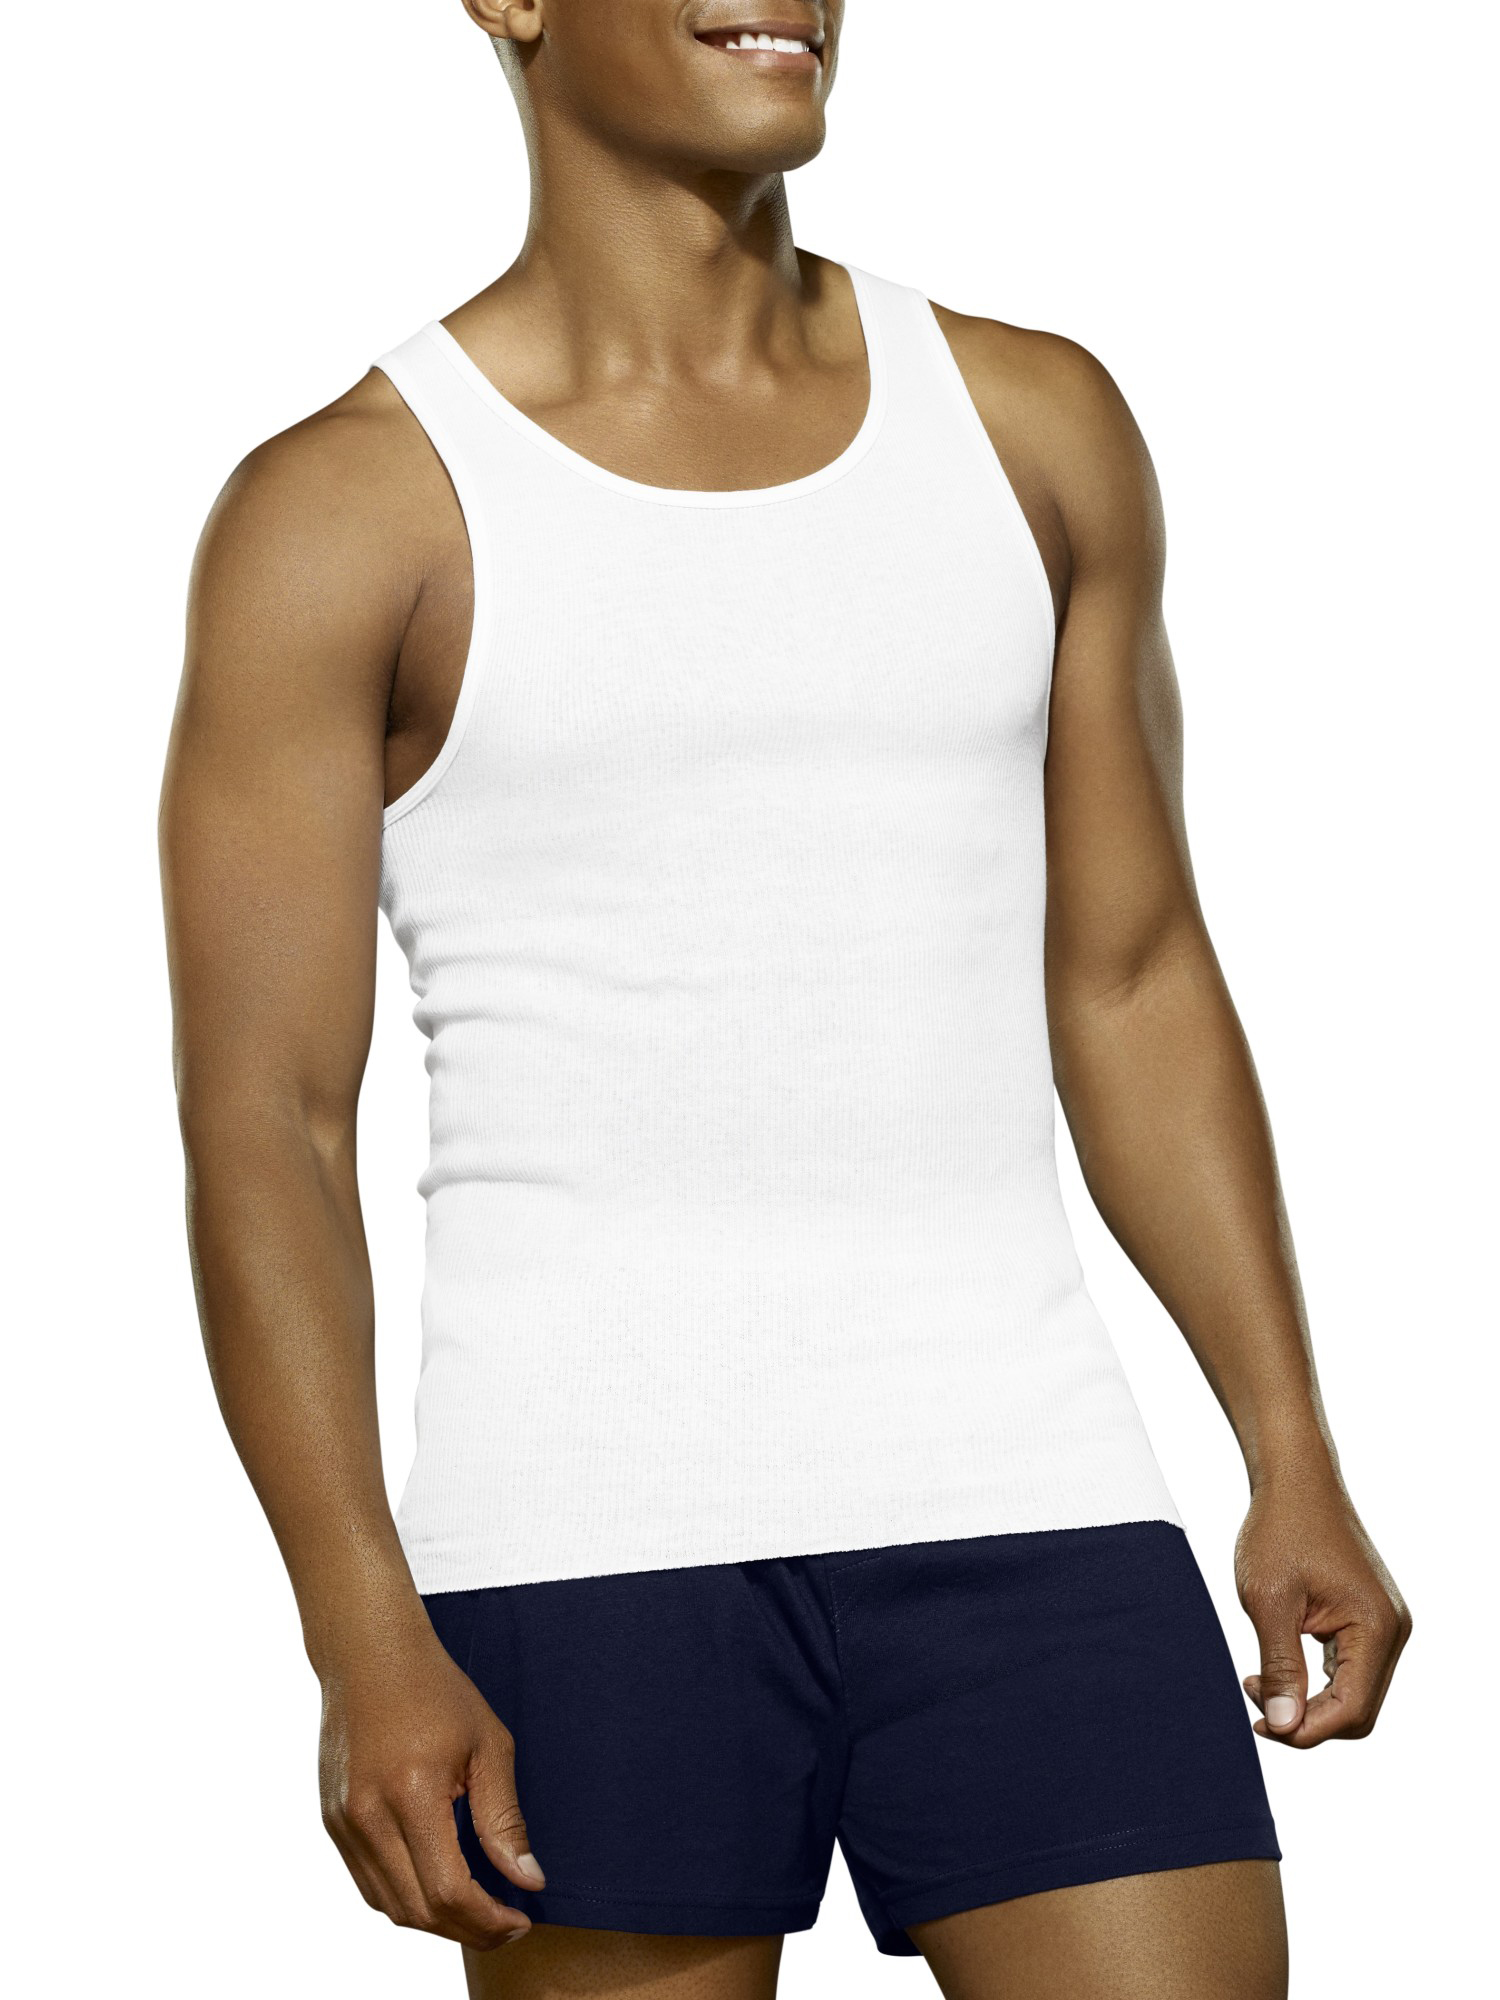 Big Men's Tag Free White A-Shirts Extended Sizes, 3 Pack